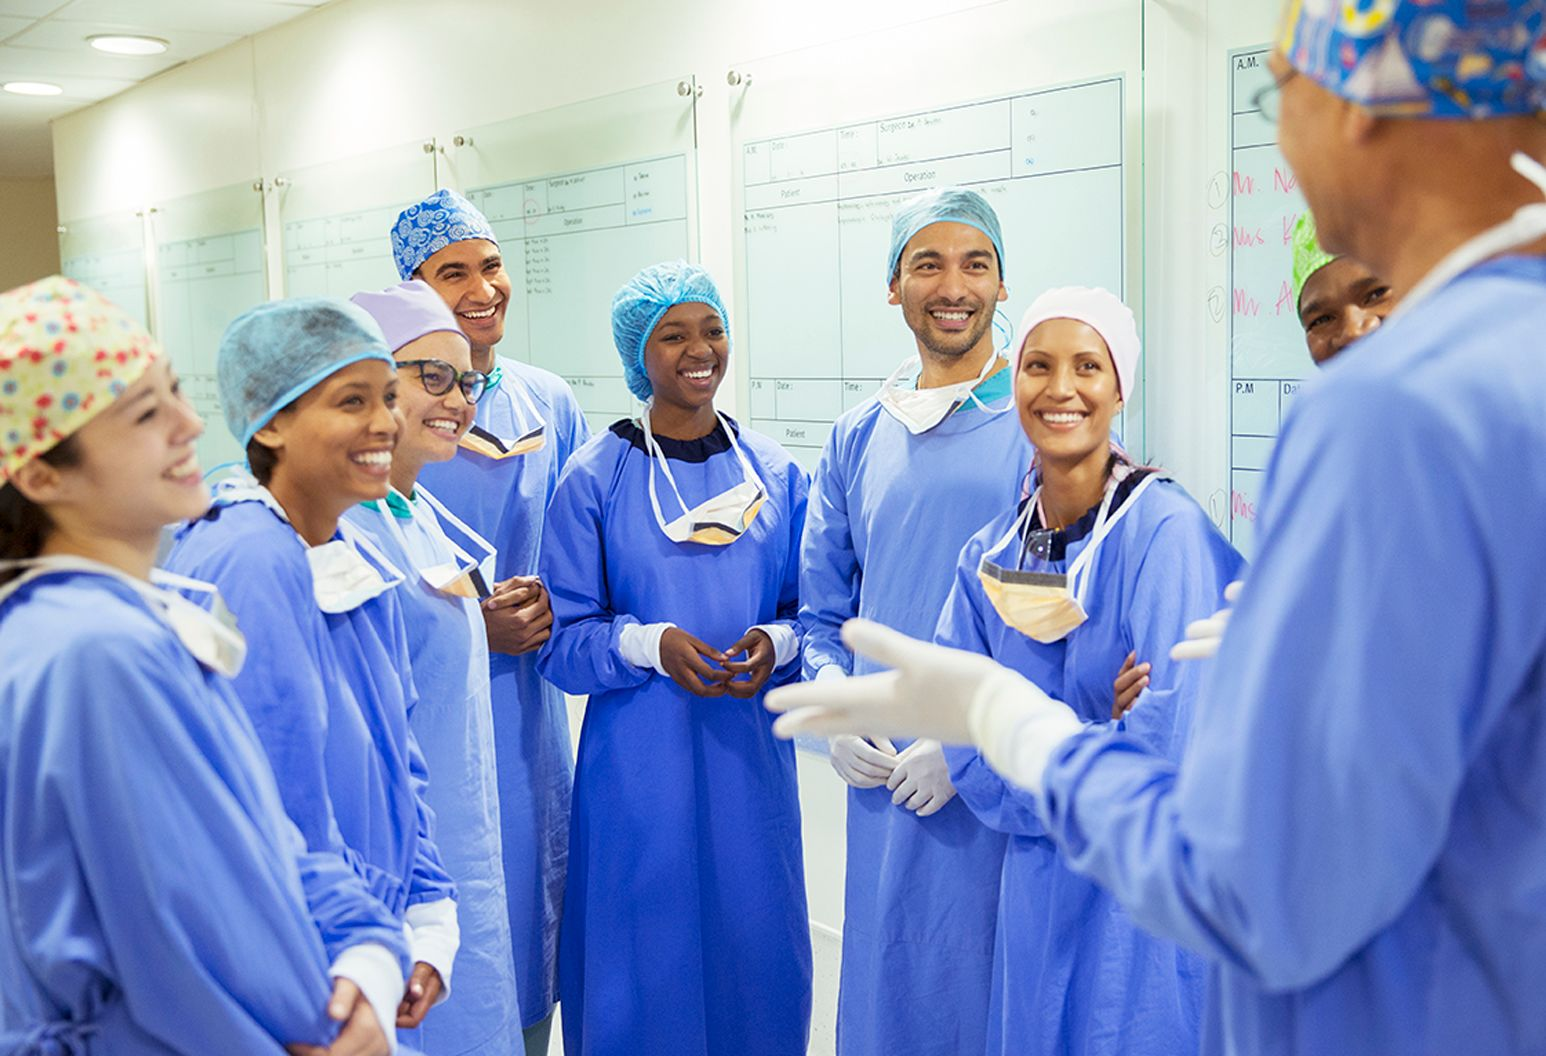 Happy surgery residents in blue scrubs listening to their group leader